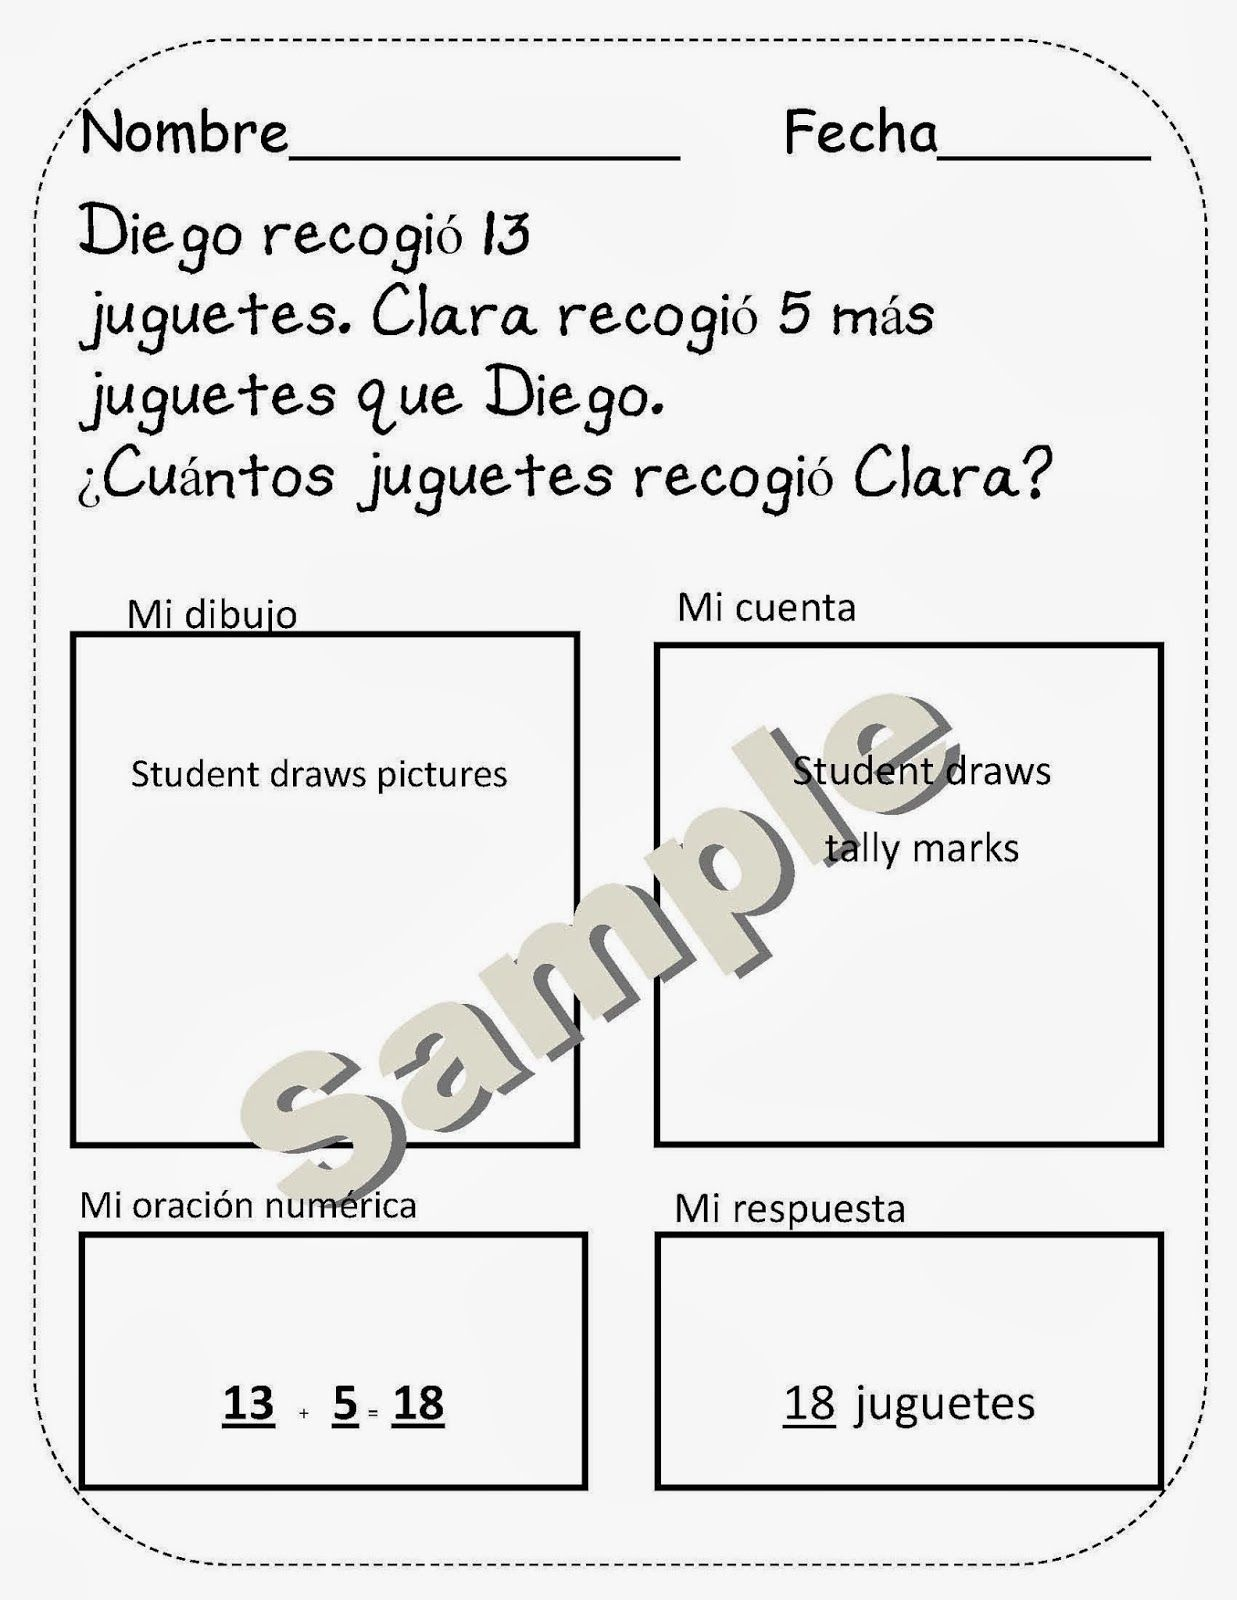 fun key dual language for first grade spanish math word problems clase de espa ol math word. Black Bedroom Furniture Sets. Home Design Ideas